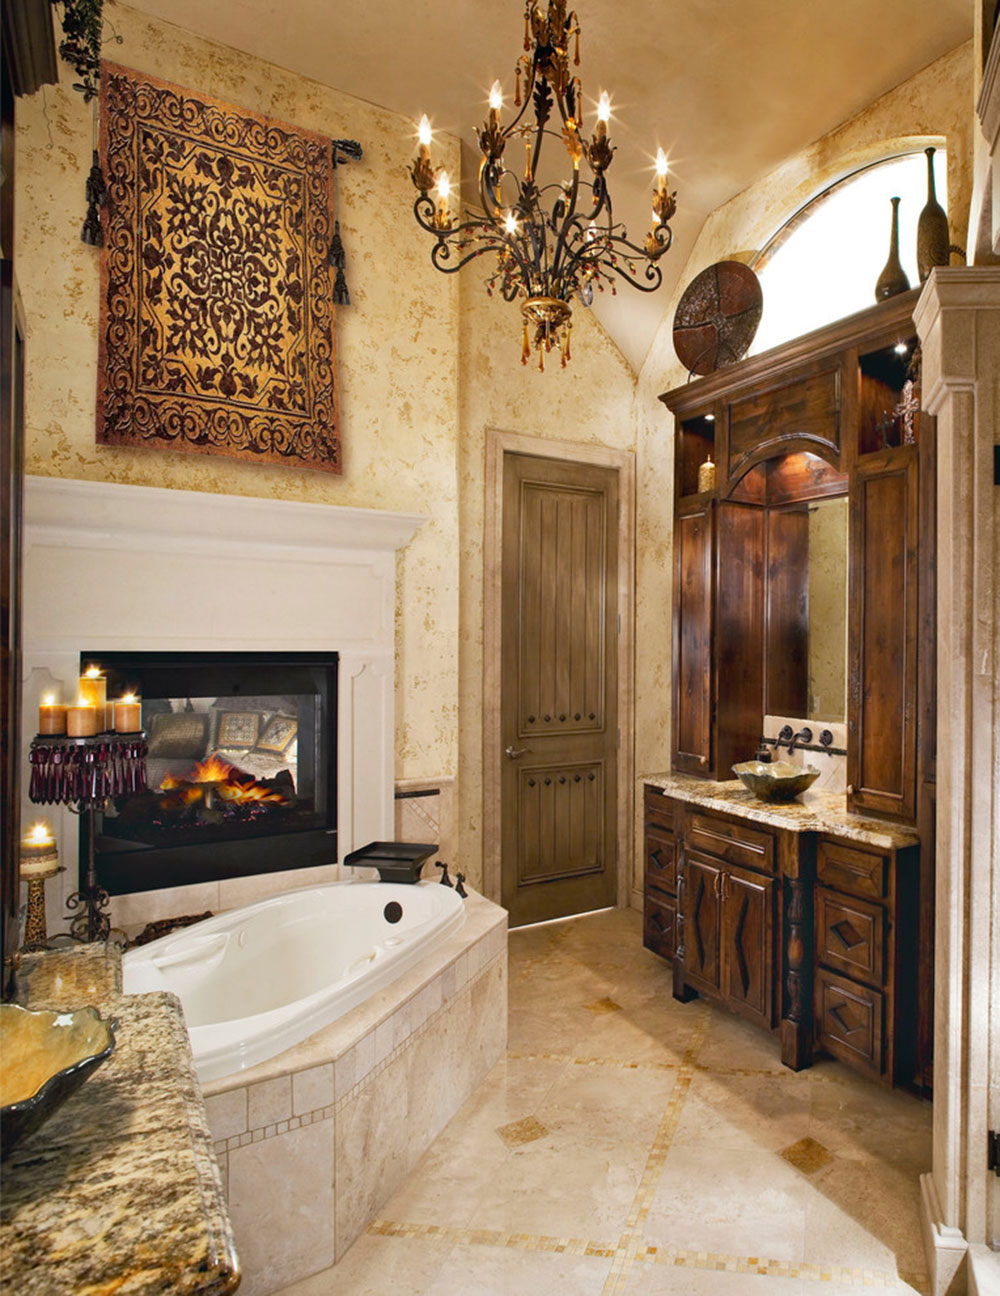 Bathroom remodeling cost: How much you?ll need to spend